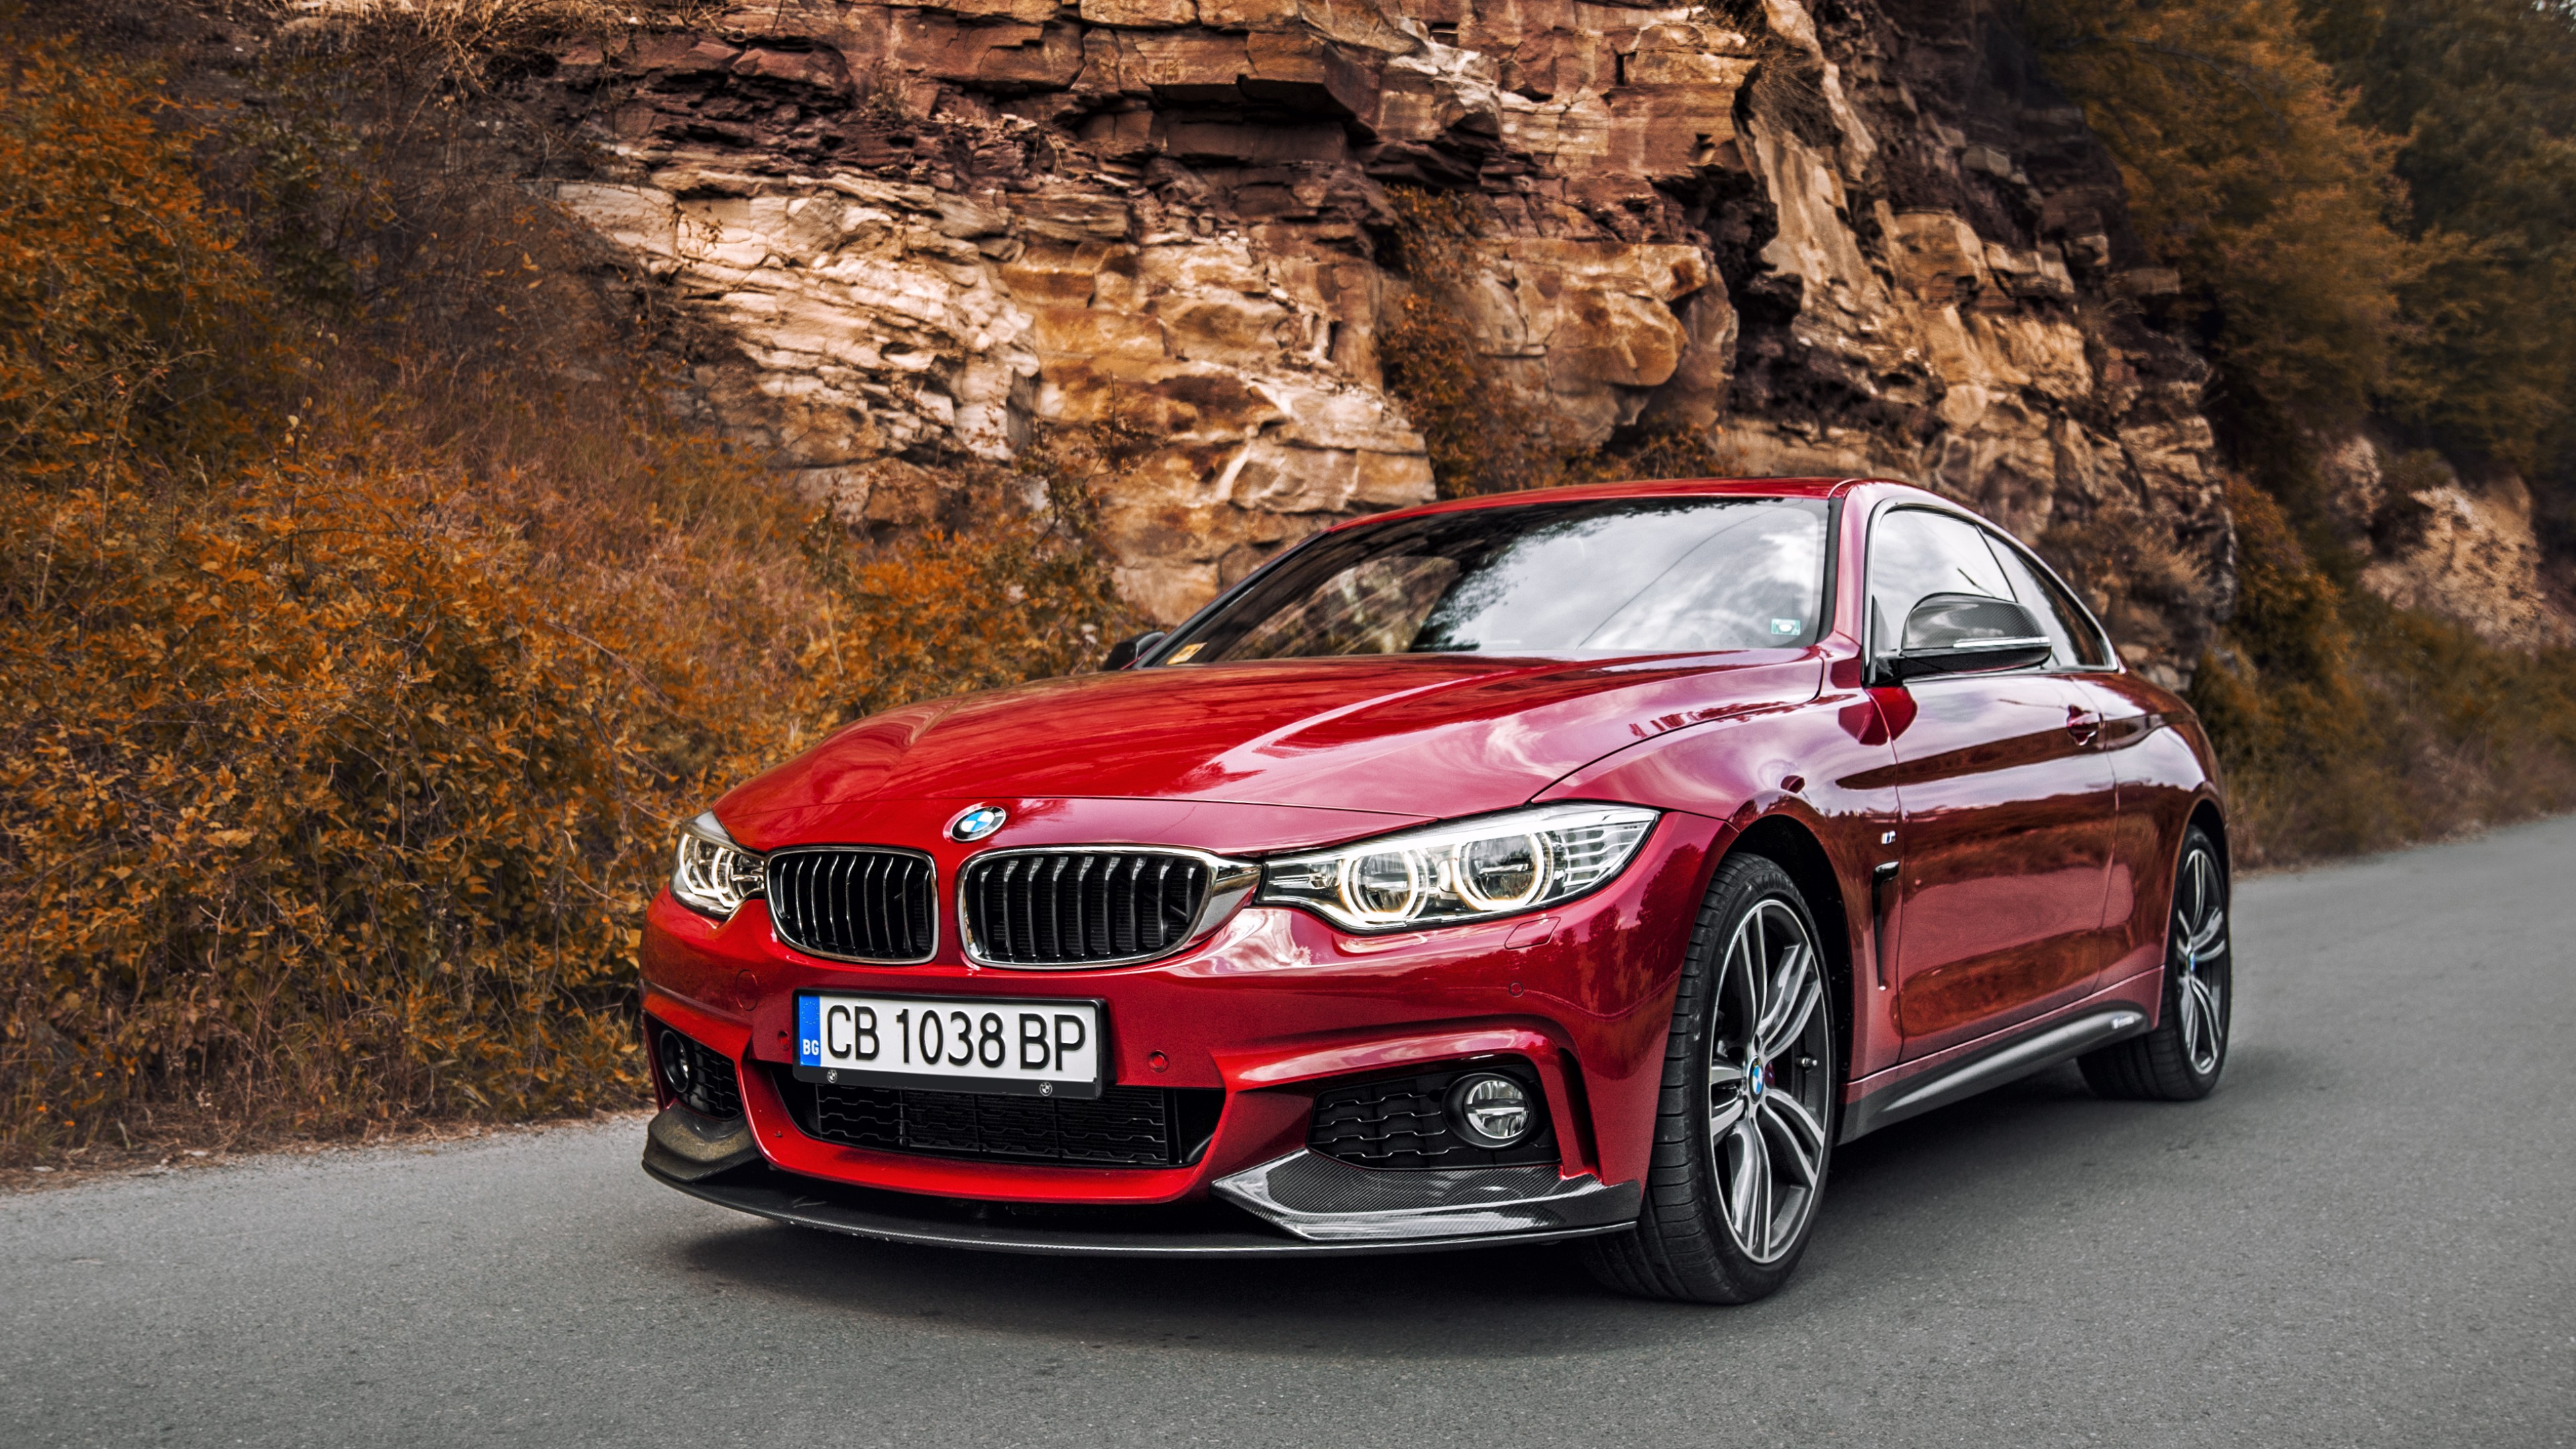 Mercedes Benz Coupe >> Wallpaper Bmw 440i, red edition, coupe, Cars & Bikes #11916